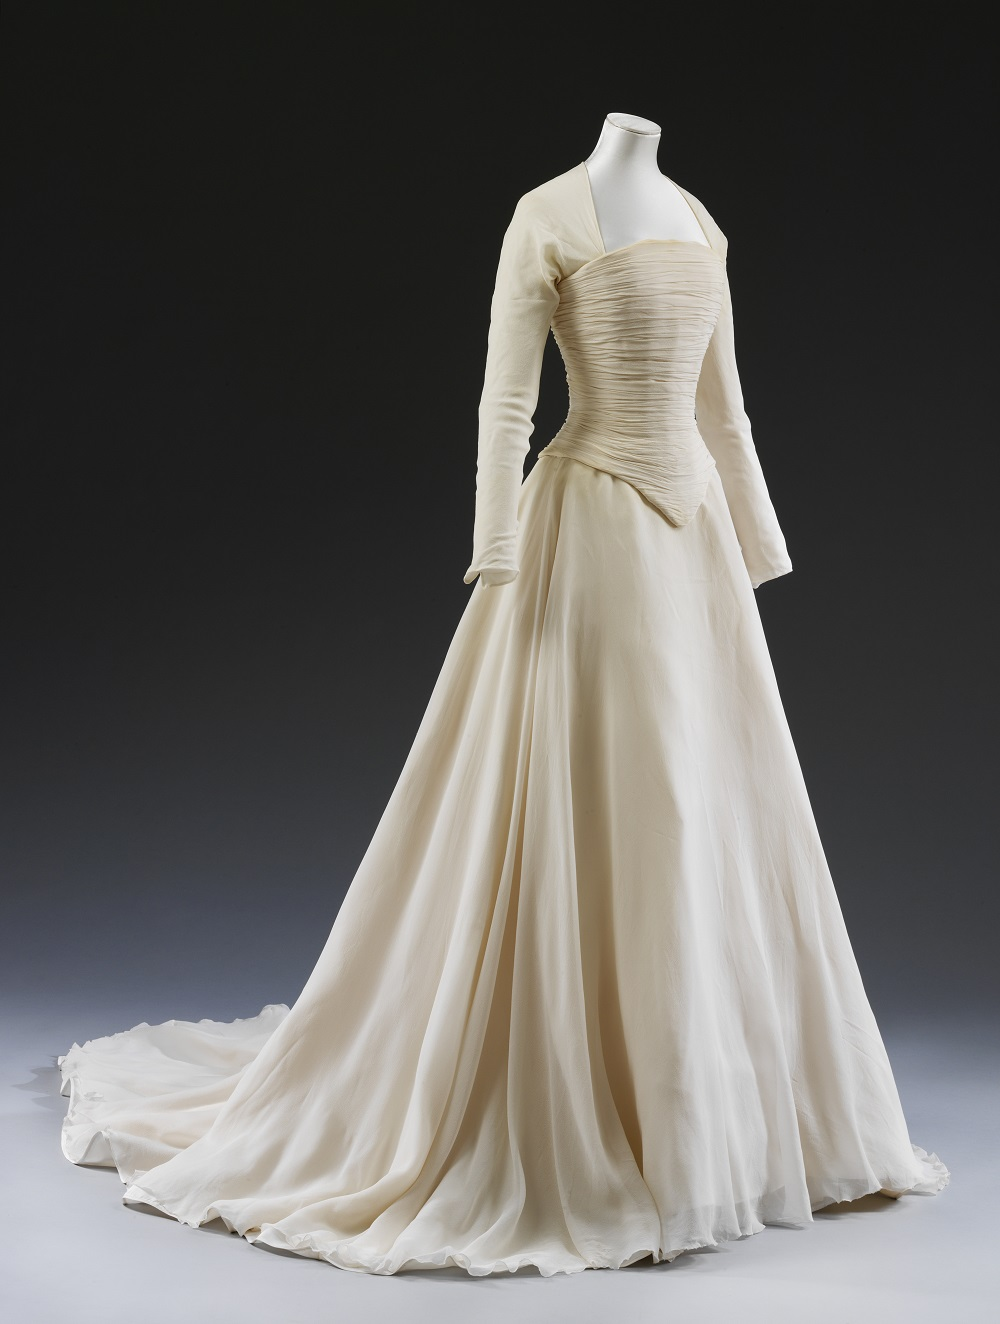 Not all white victoria and albert museum for 19th century wedding dresses